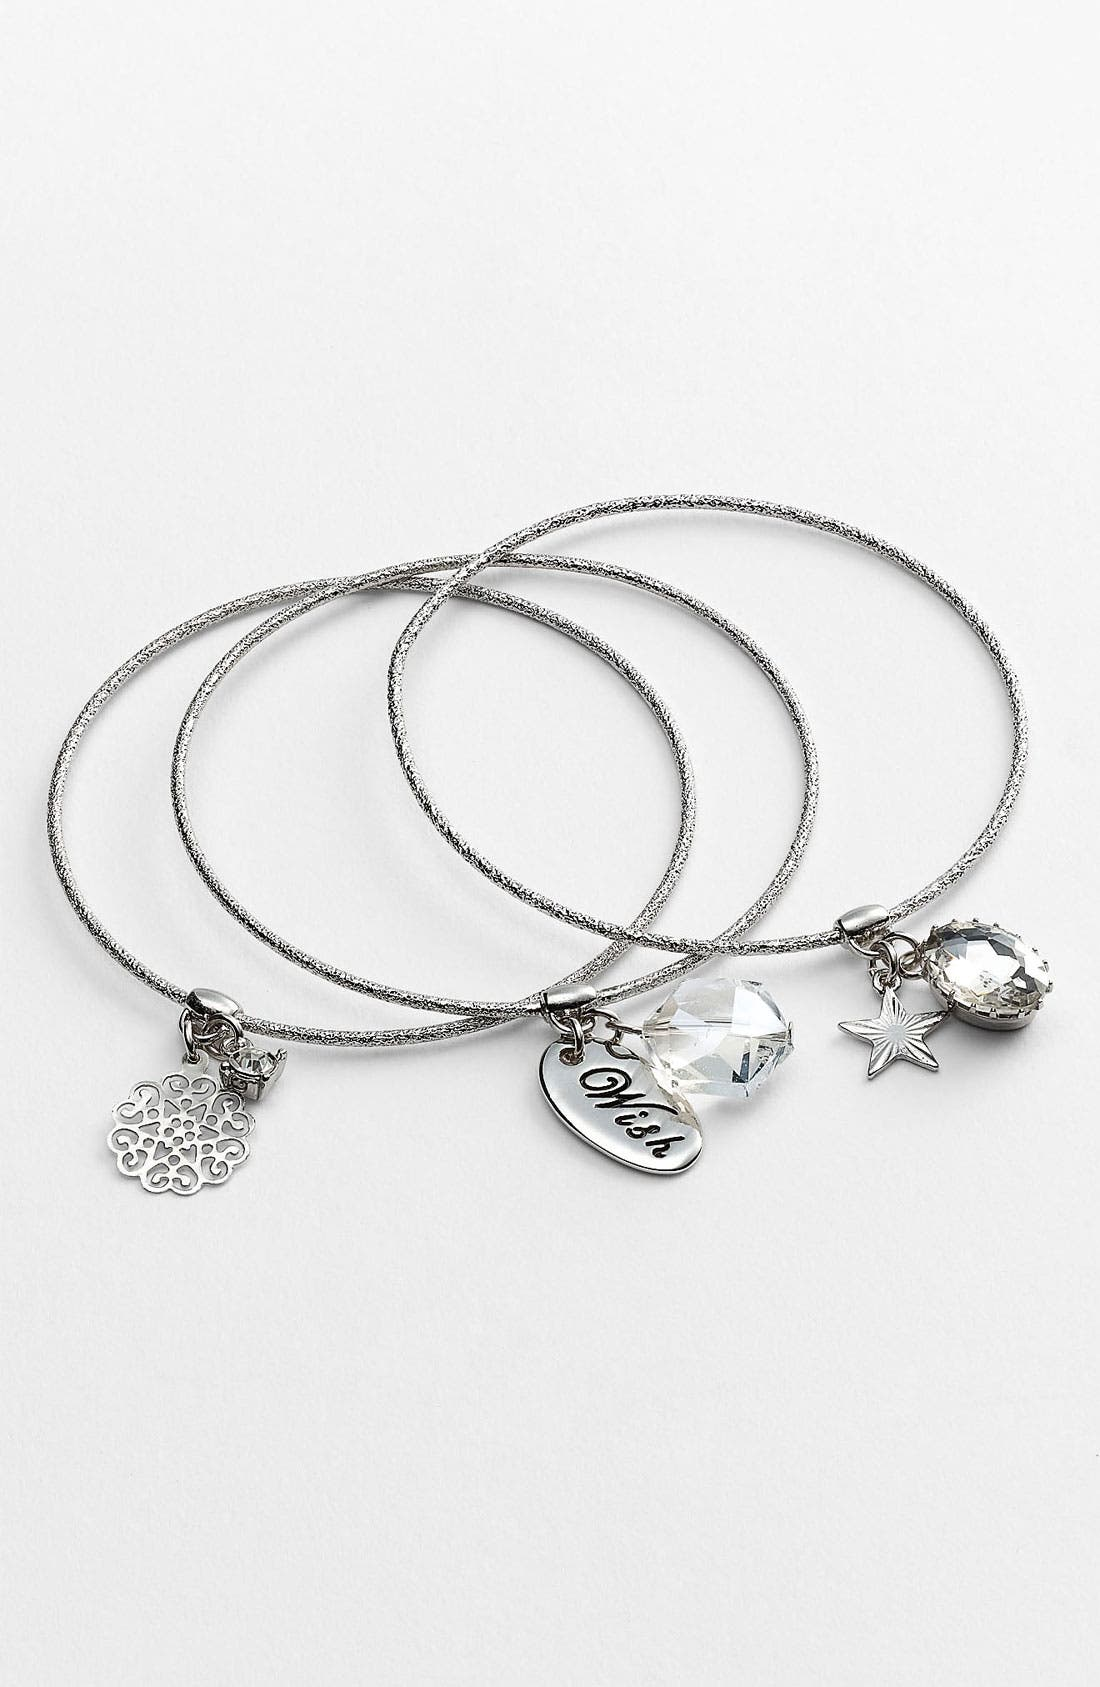 Alternate Image 1 Selected - Nordstrom 'Treasures' Charm Bangles (Set of 3)